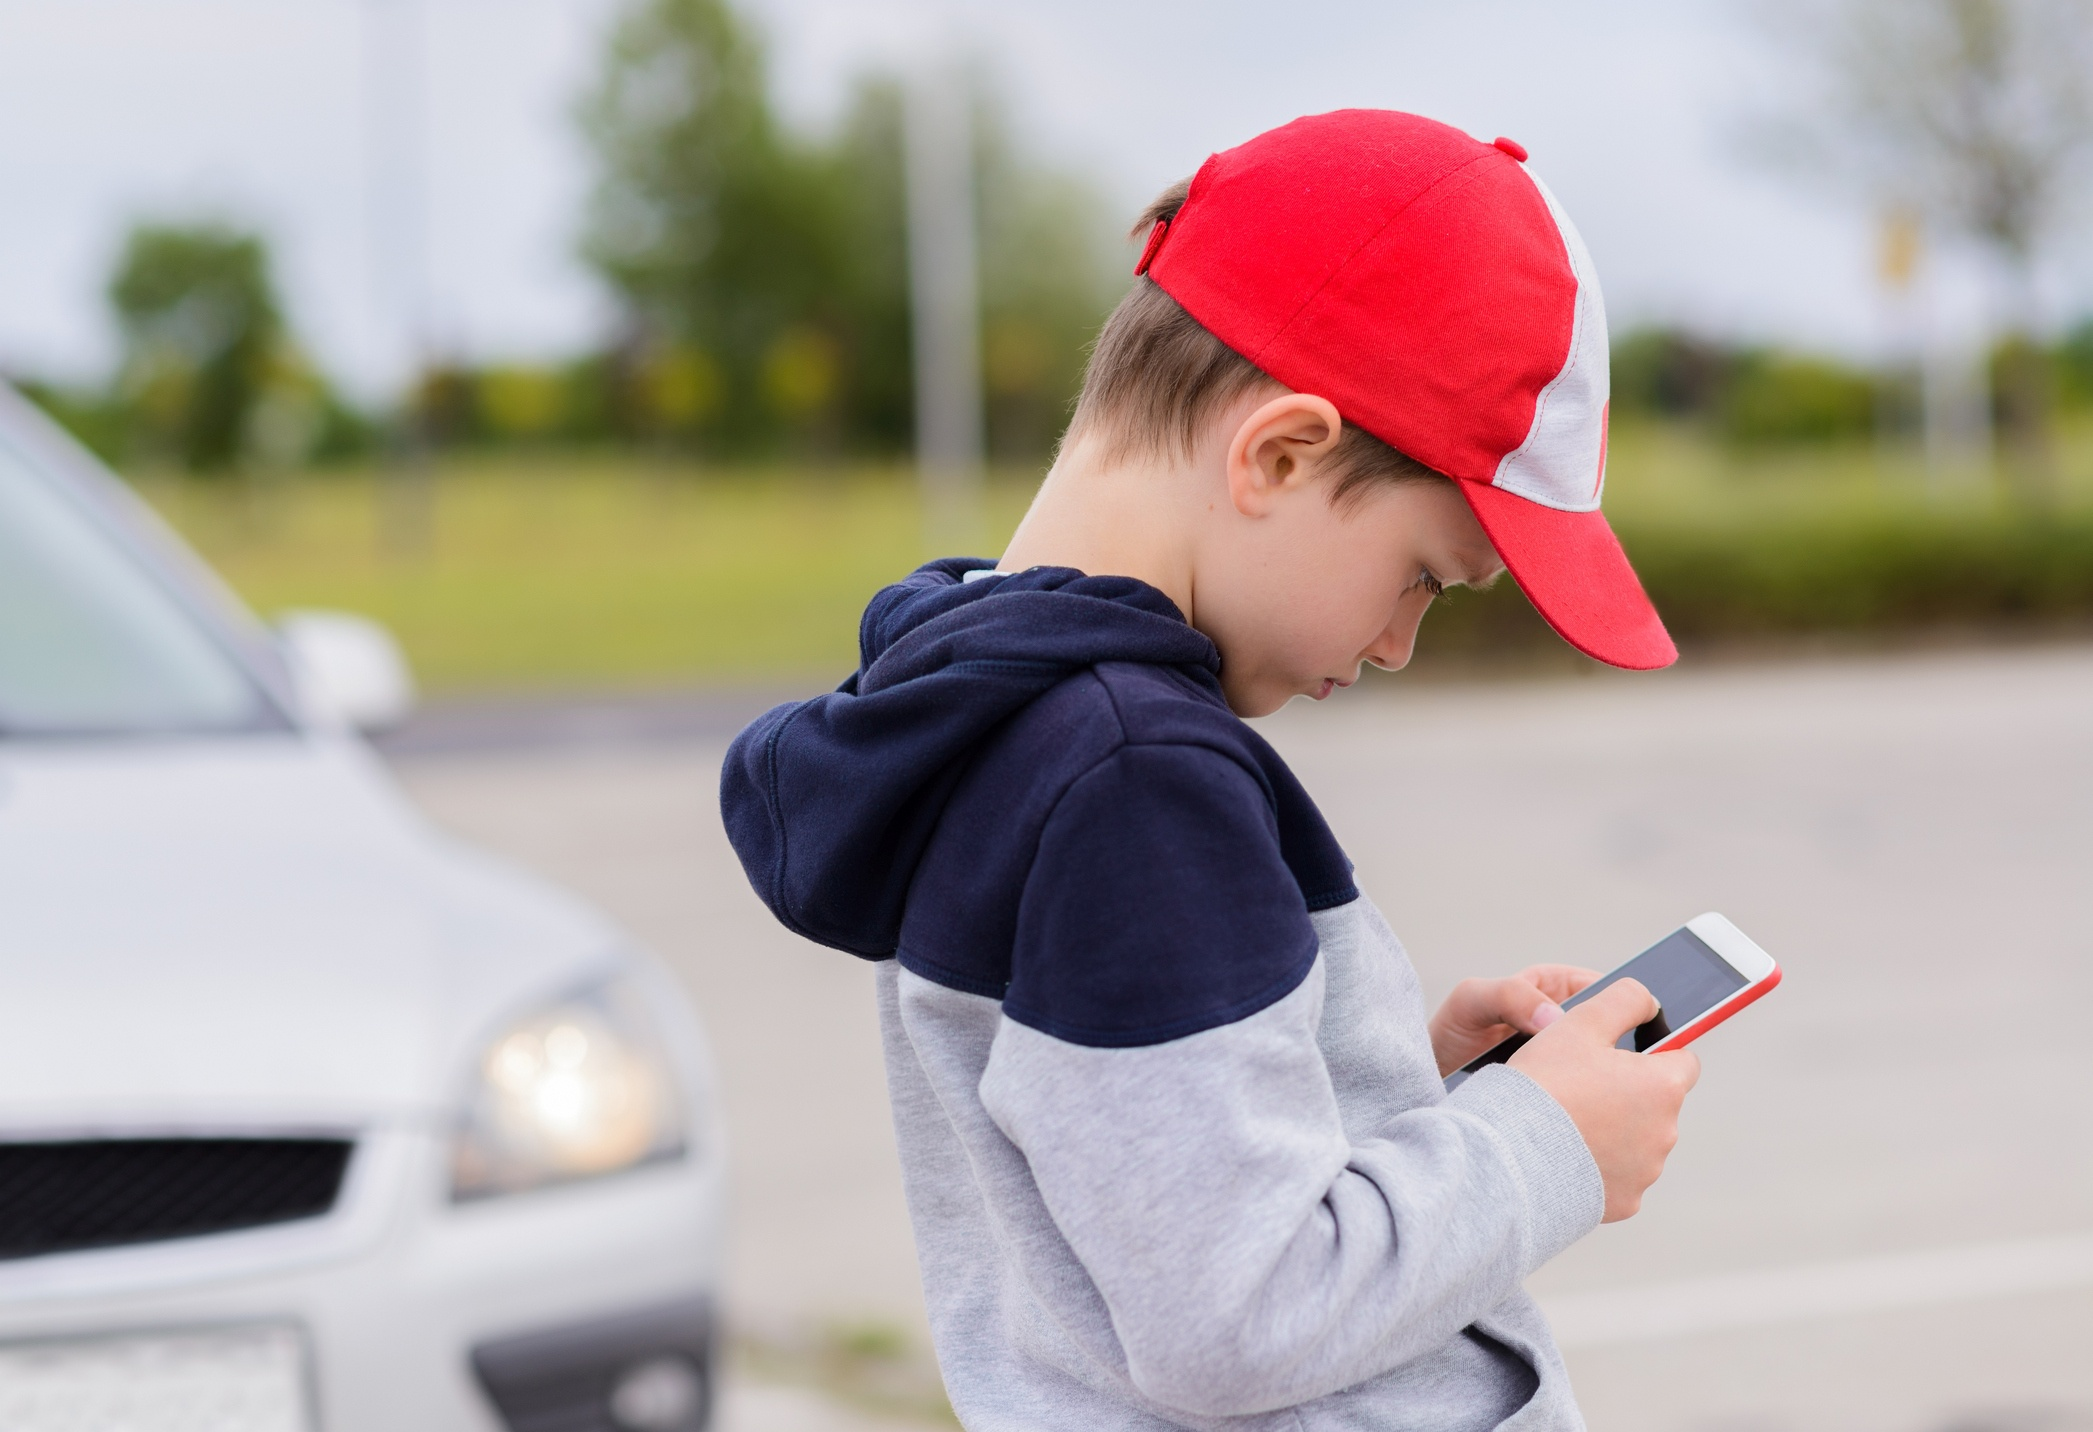 Distracted walking in school zone